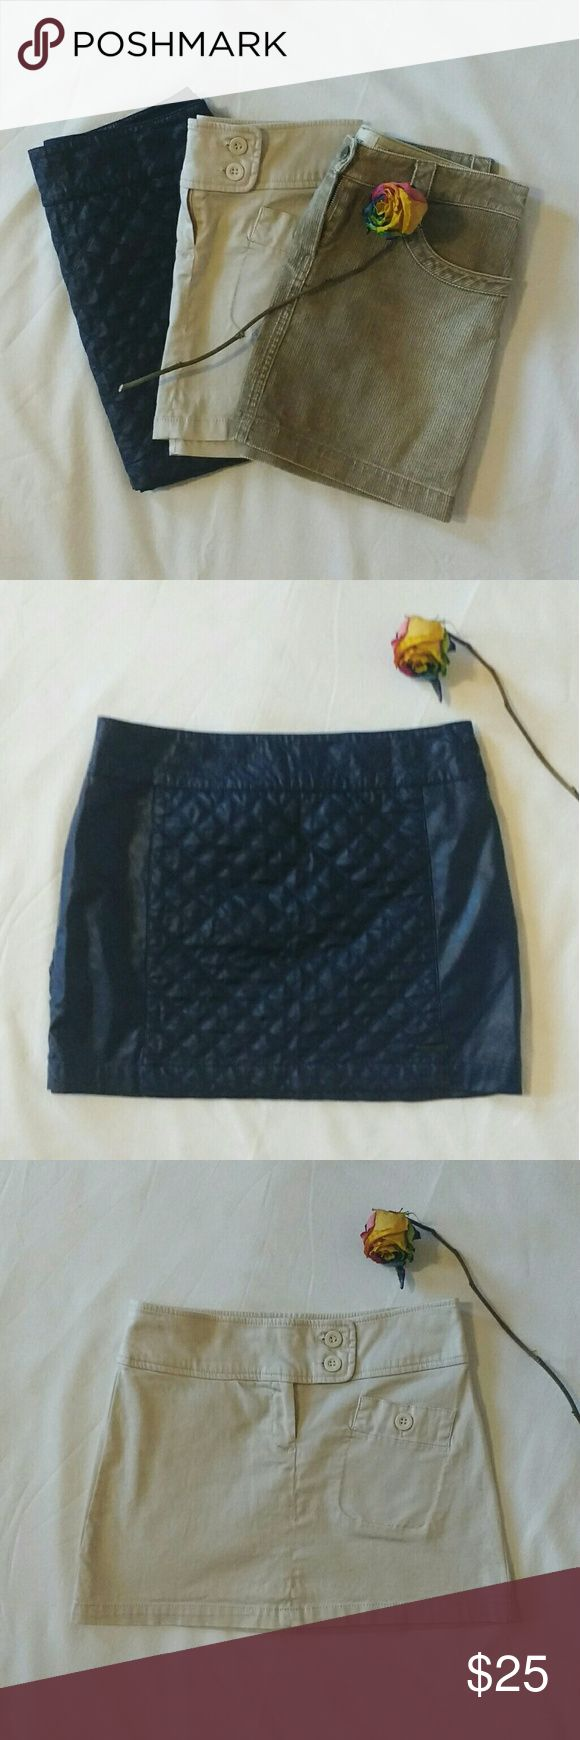 🎉🎉Monday Only- Size 3 Mini Skirts🎉🎉 Size 2 three mini sexy skirts. Blue faux leather Abercrombie & Fitch, olive green corduroy Mango, beige stretchy Mango. Price is firm. Happy shoppinggggg!!!! Abercrombie & Fitch Skirts Mini